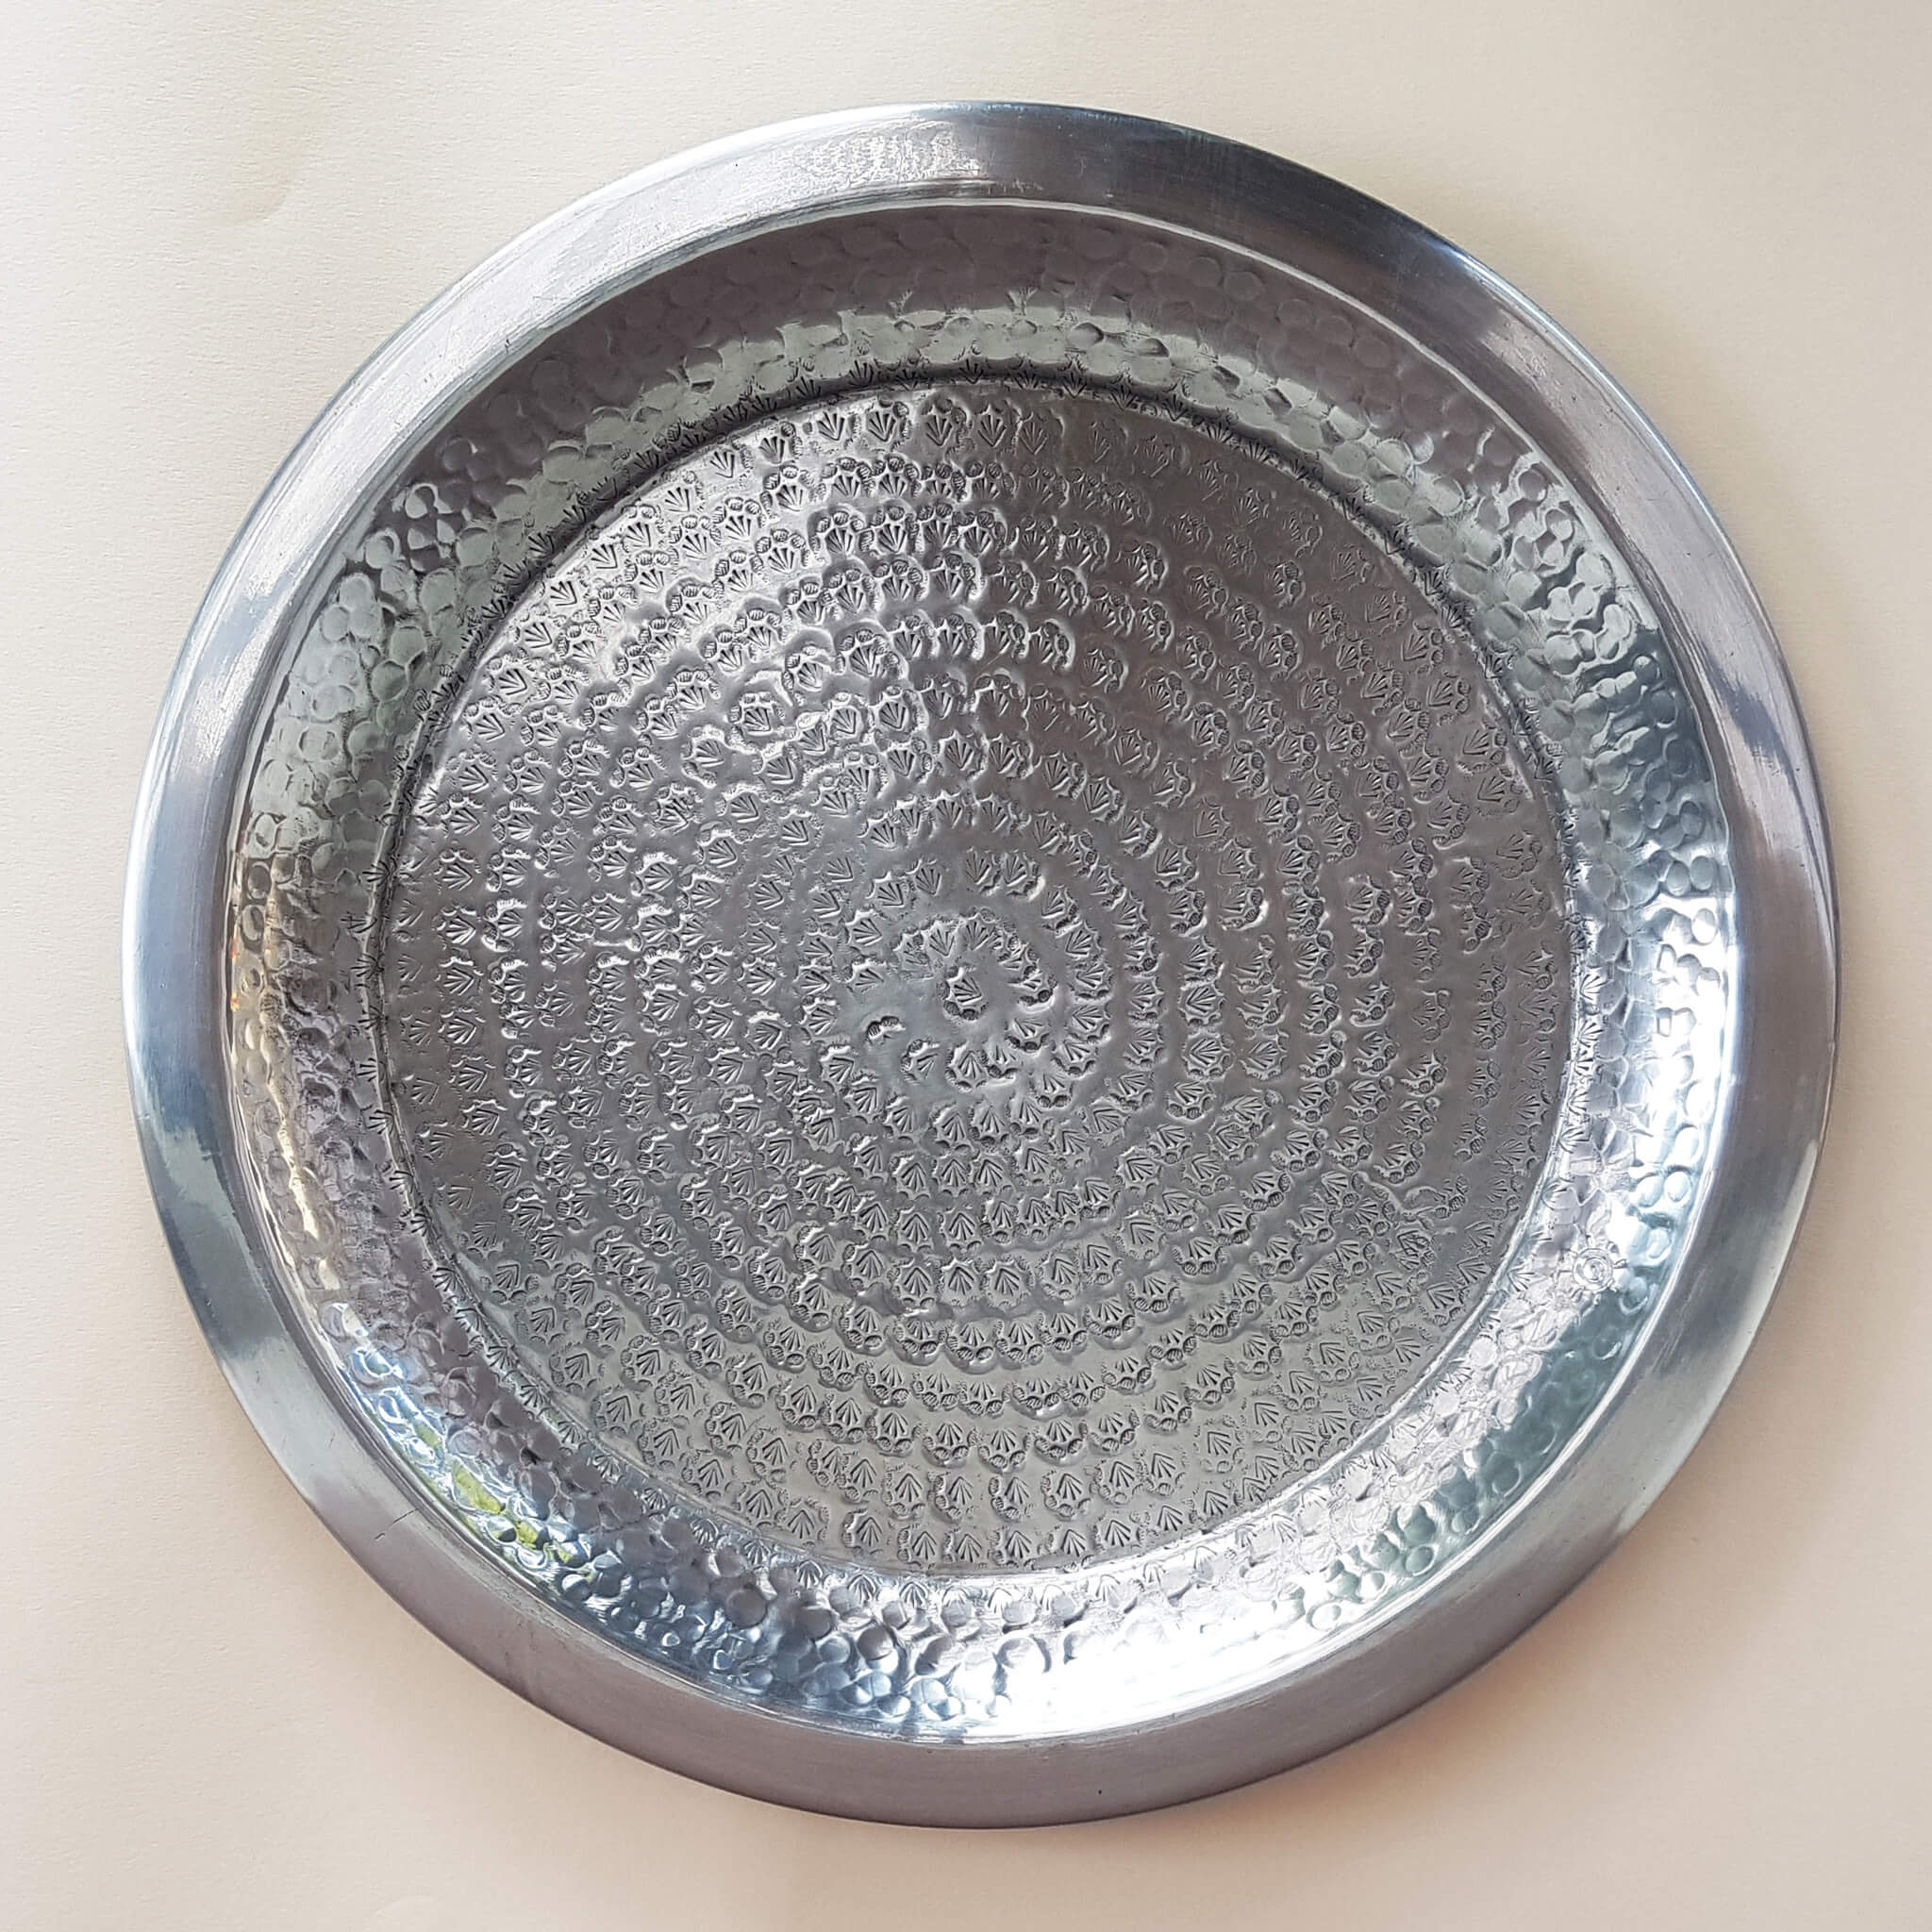 Van Verre Indian Darjeeling Tray hand beaten metal silver colour 28 cm - Unik by Nature